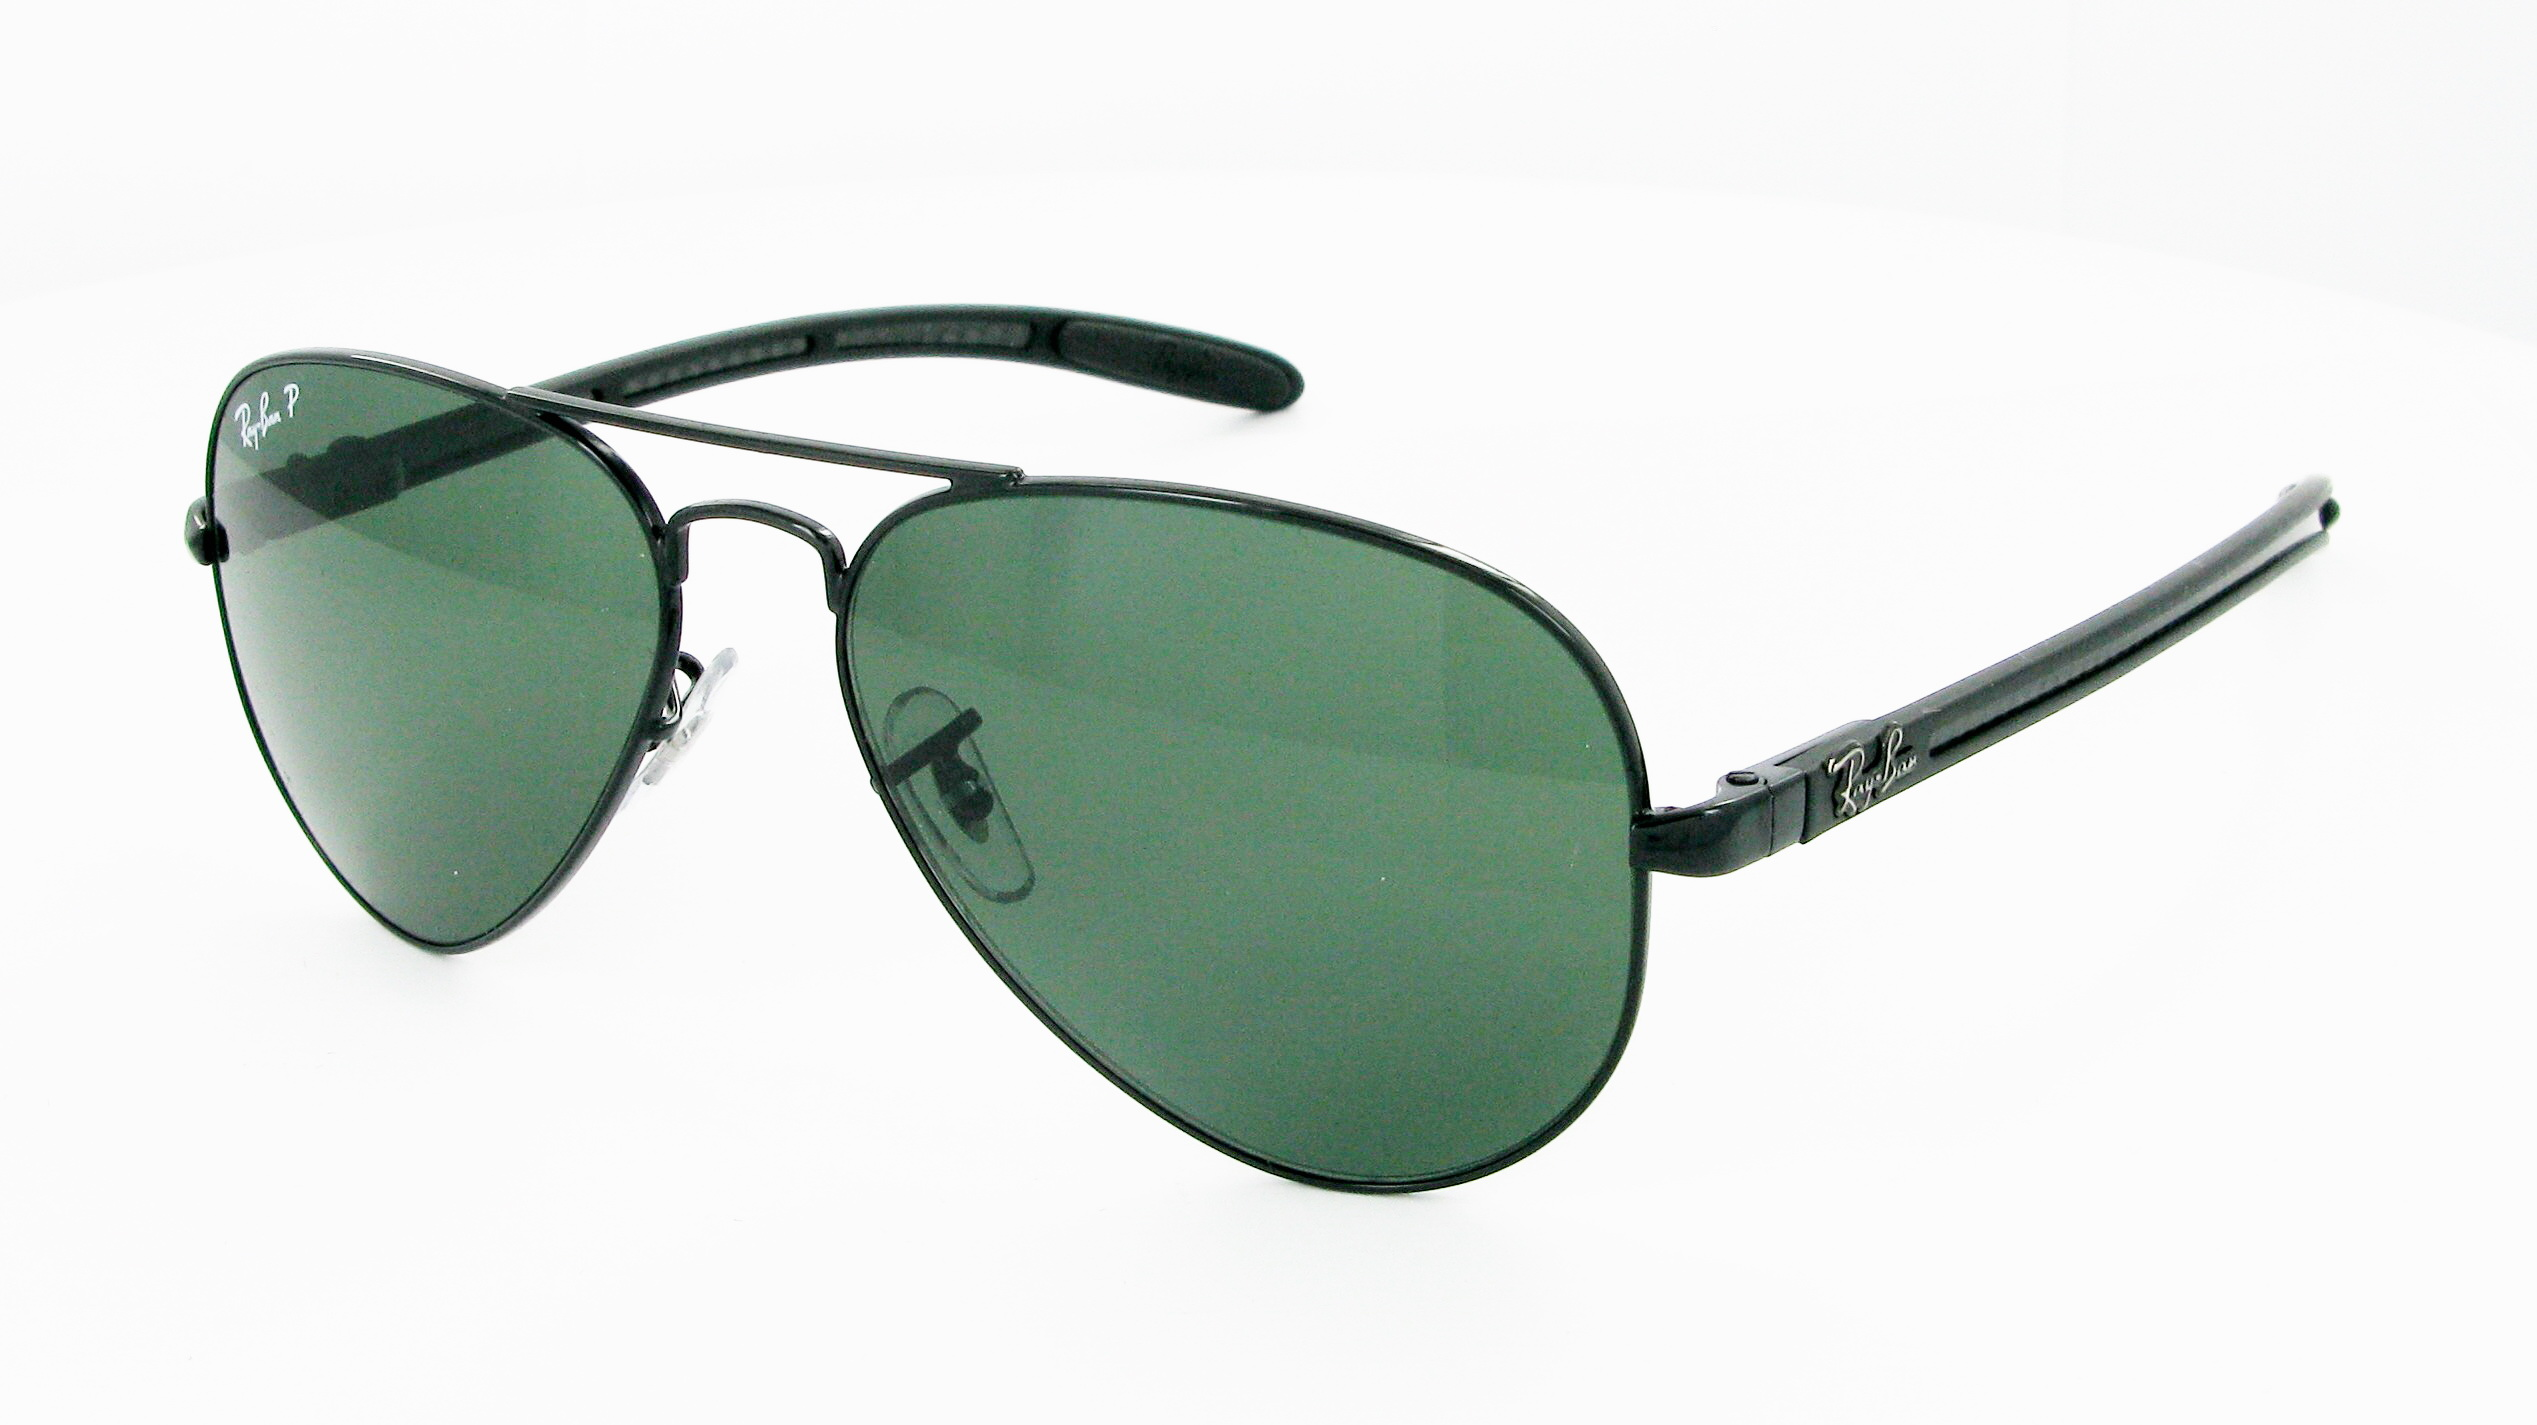 30dce339a9 Ray Ban Replacement Lenses Rb 8307 « Heritage Malta